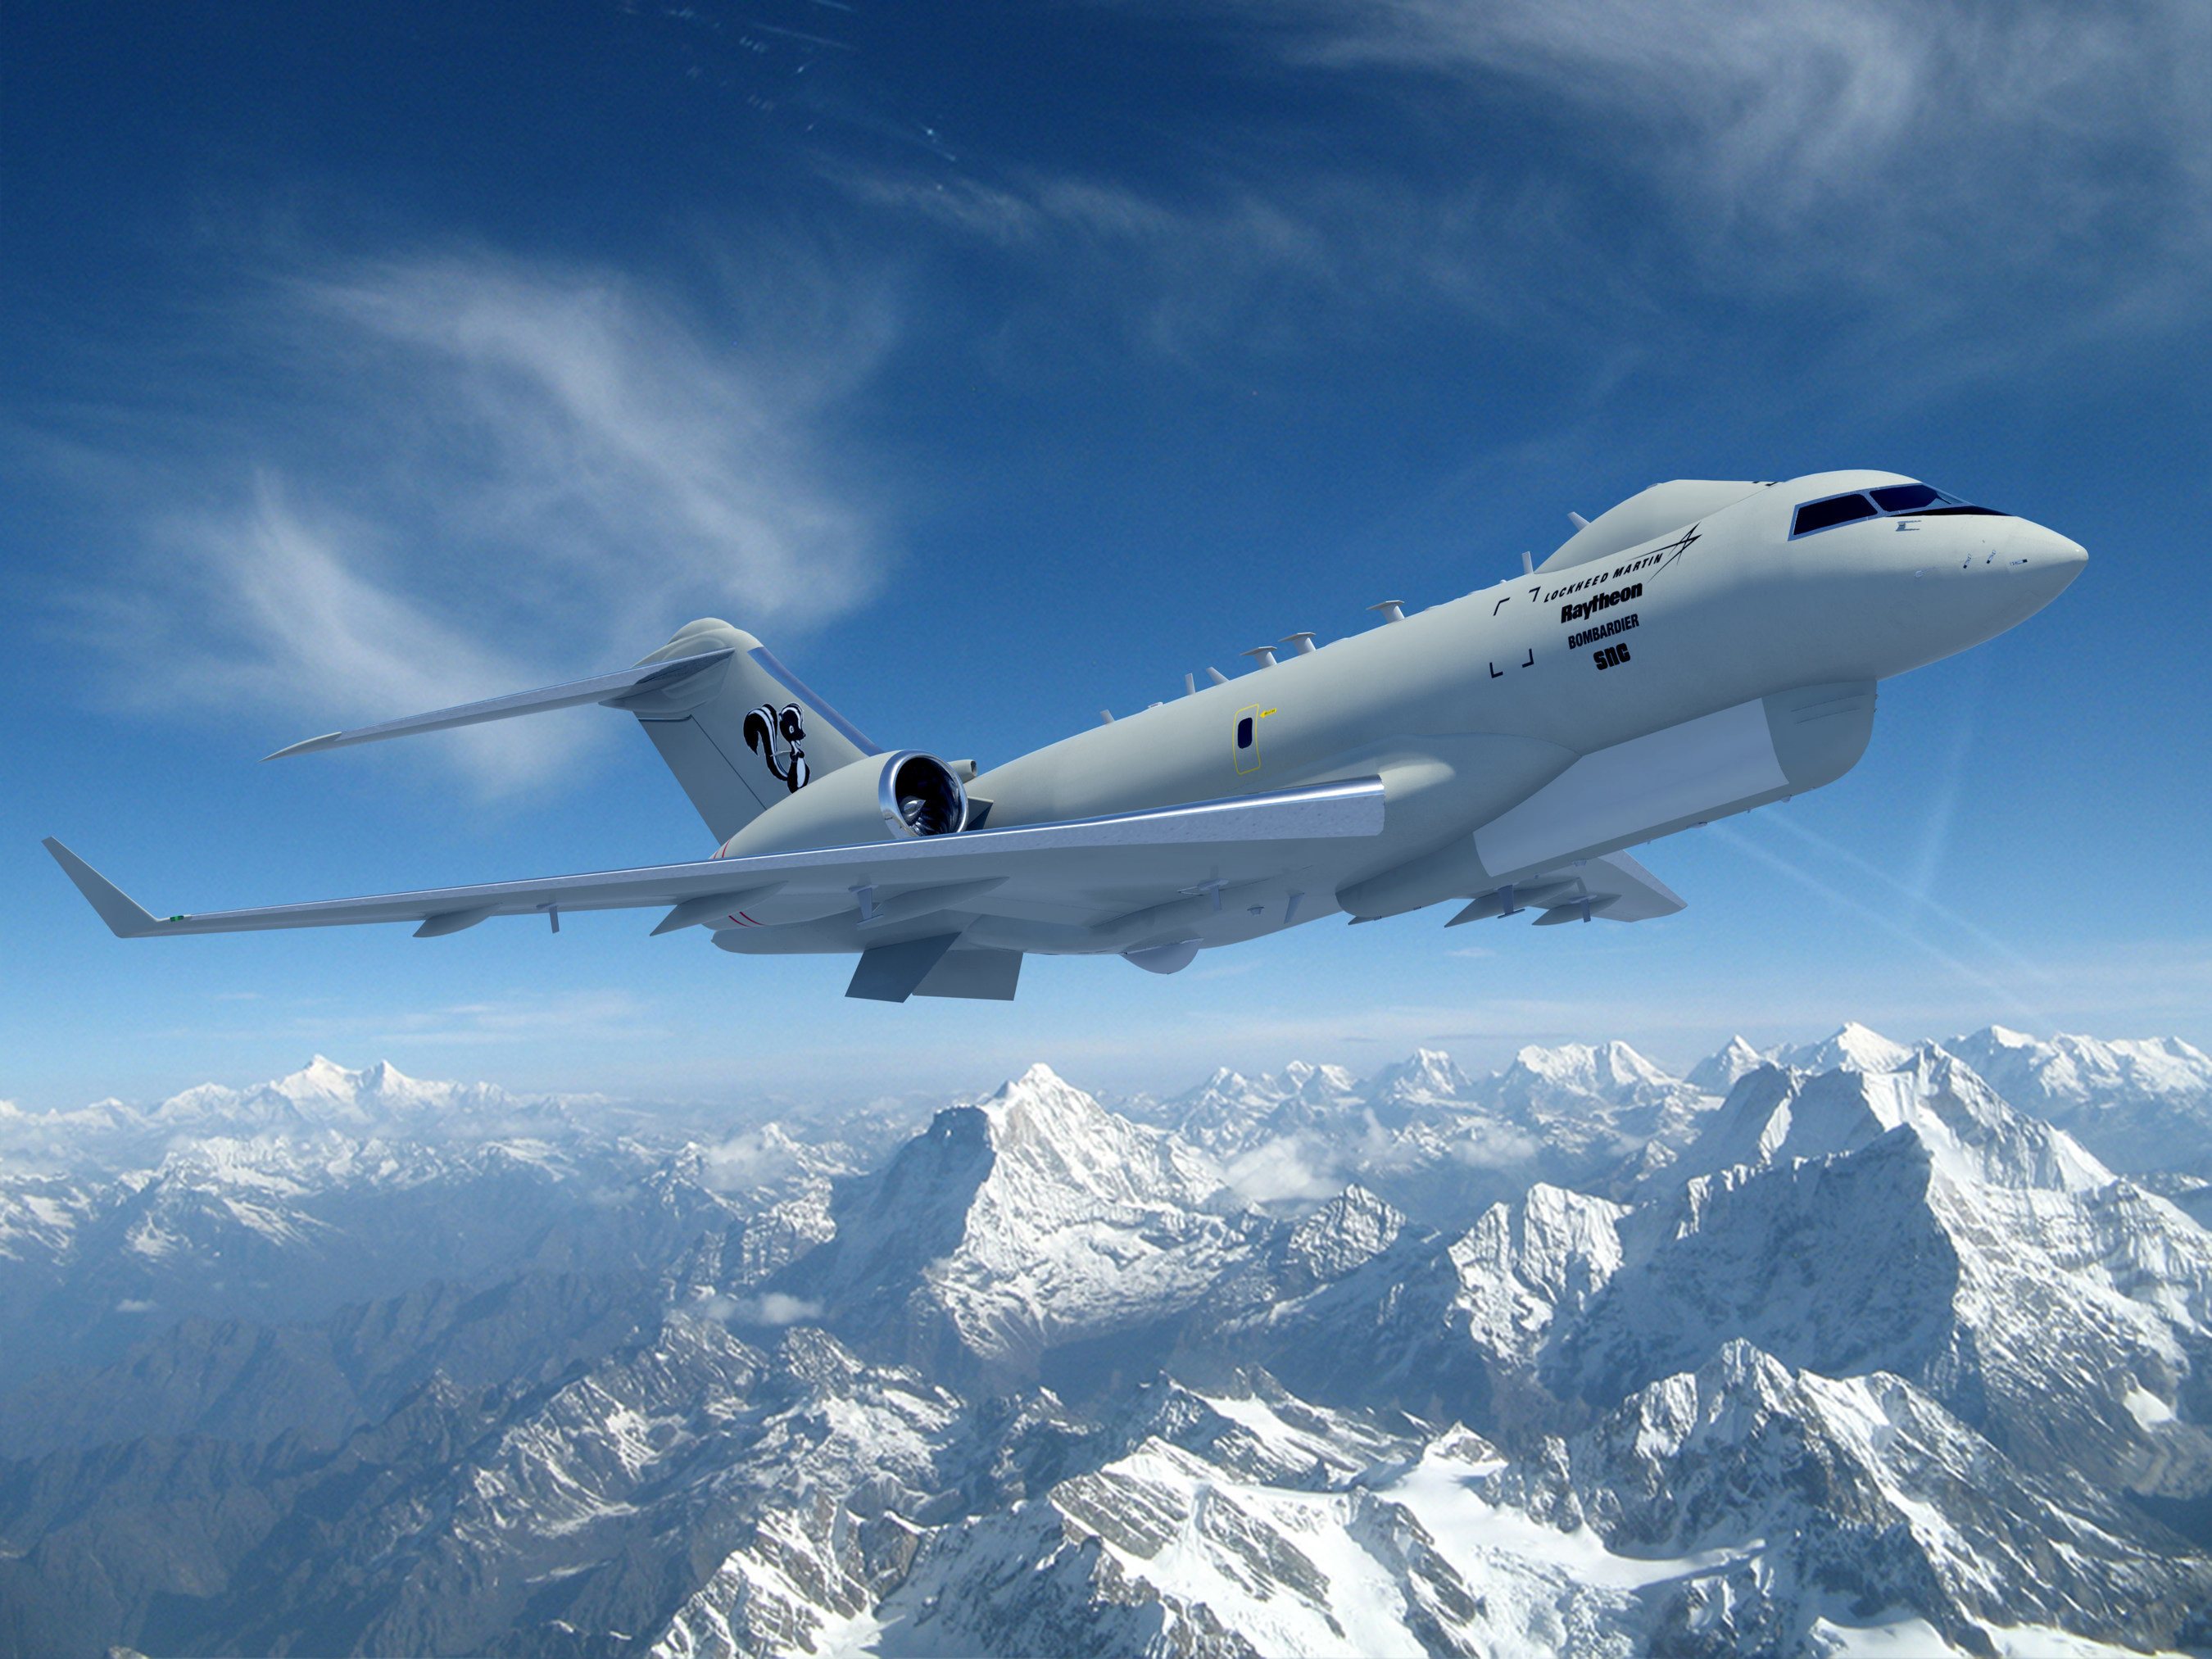 Sierra Nevada Corporation Joins Lockheed Martin Skunk Works® JSTARS Recap Team